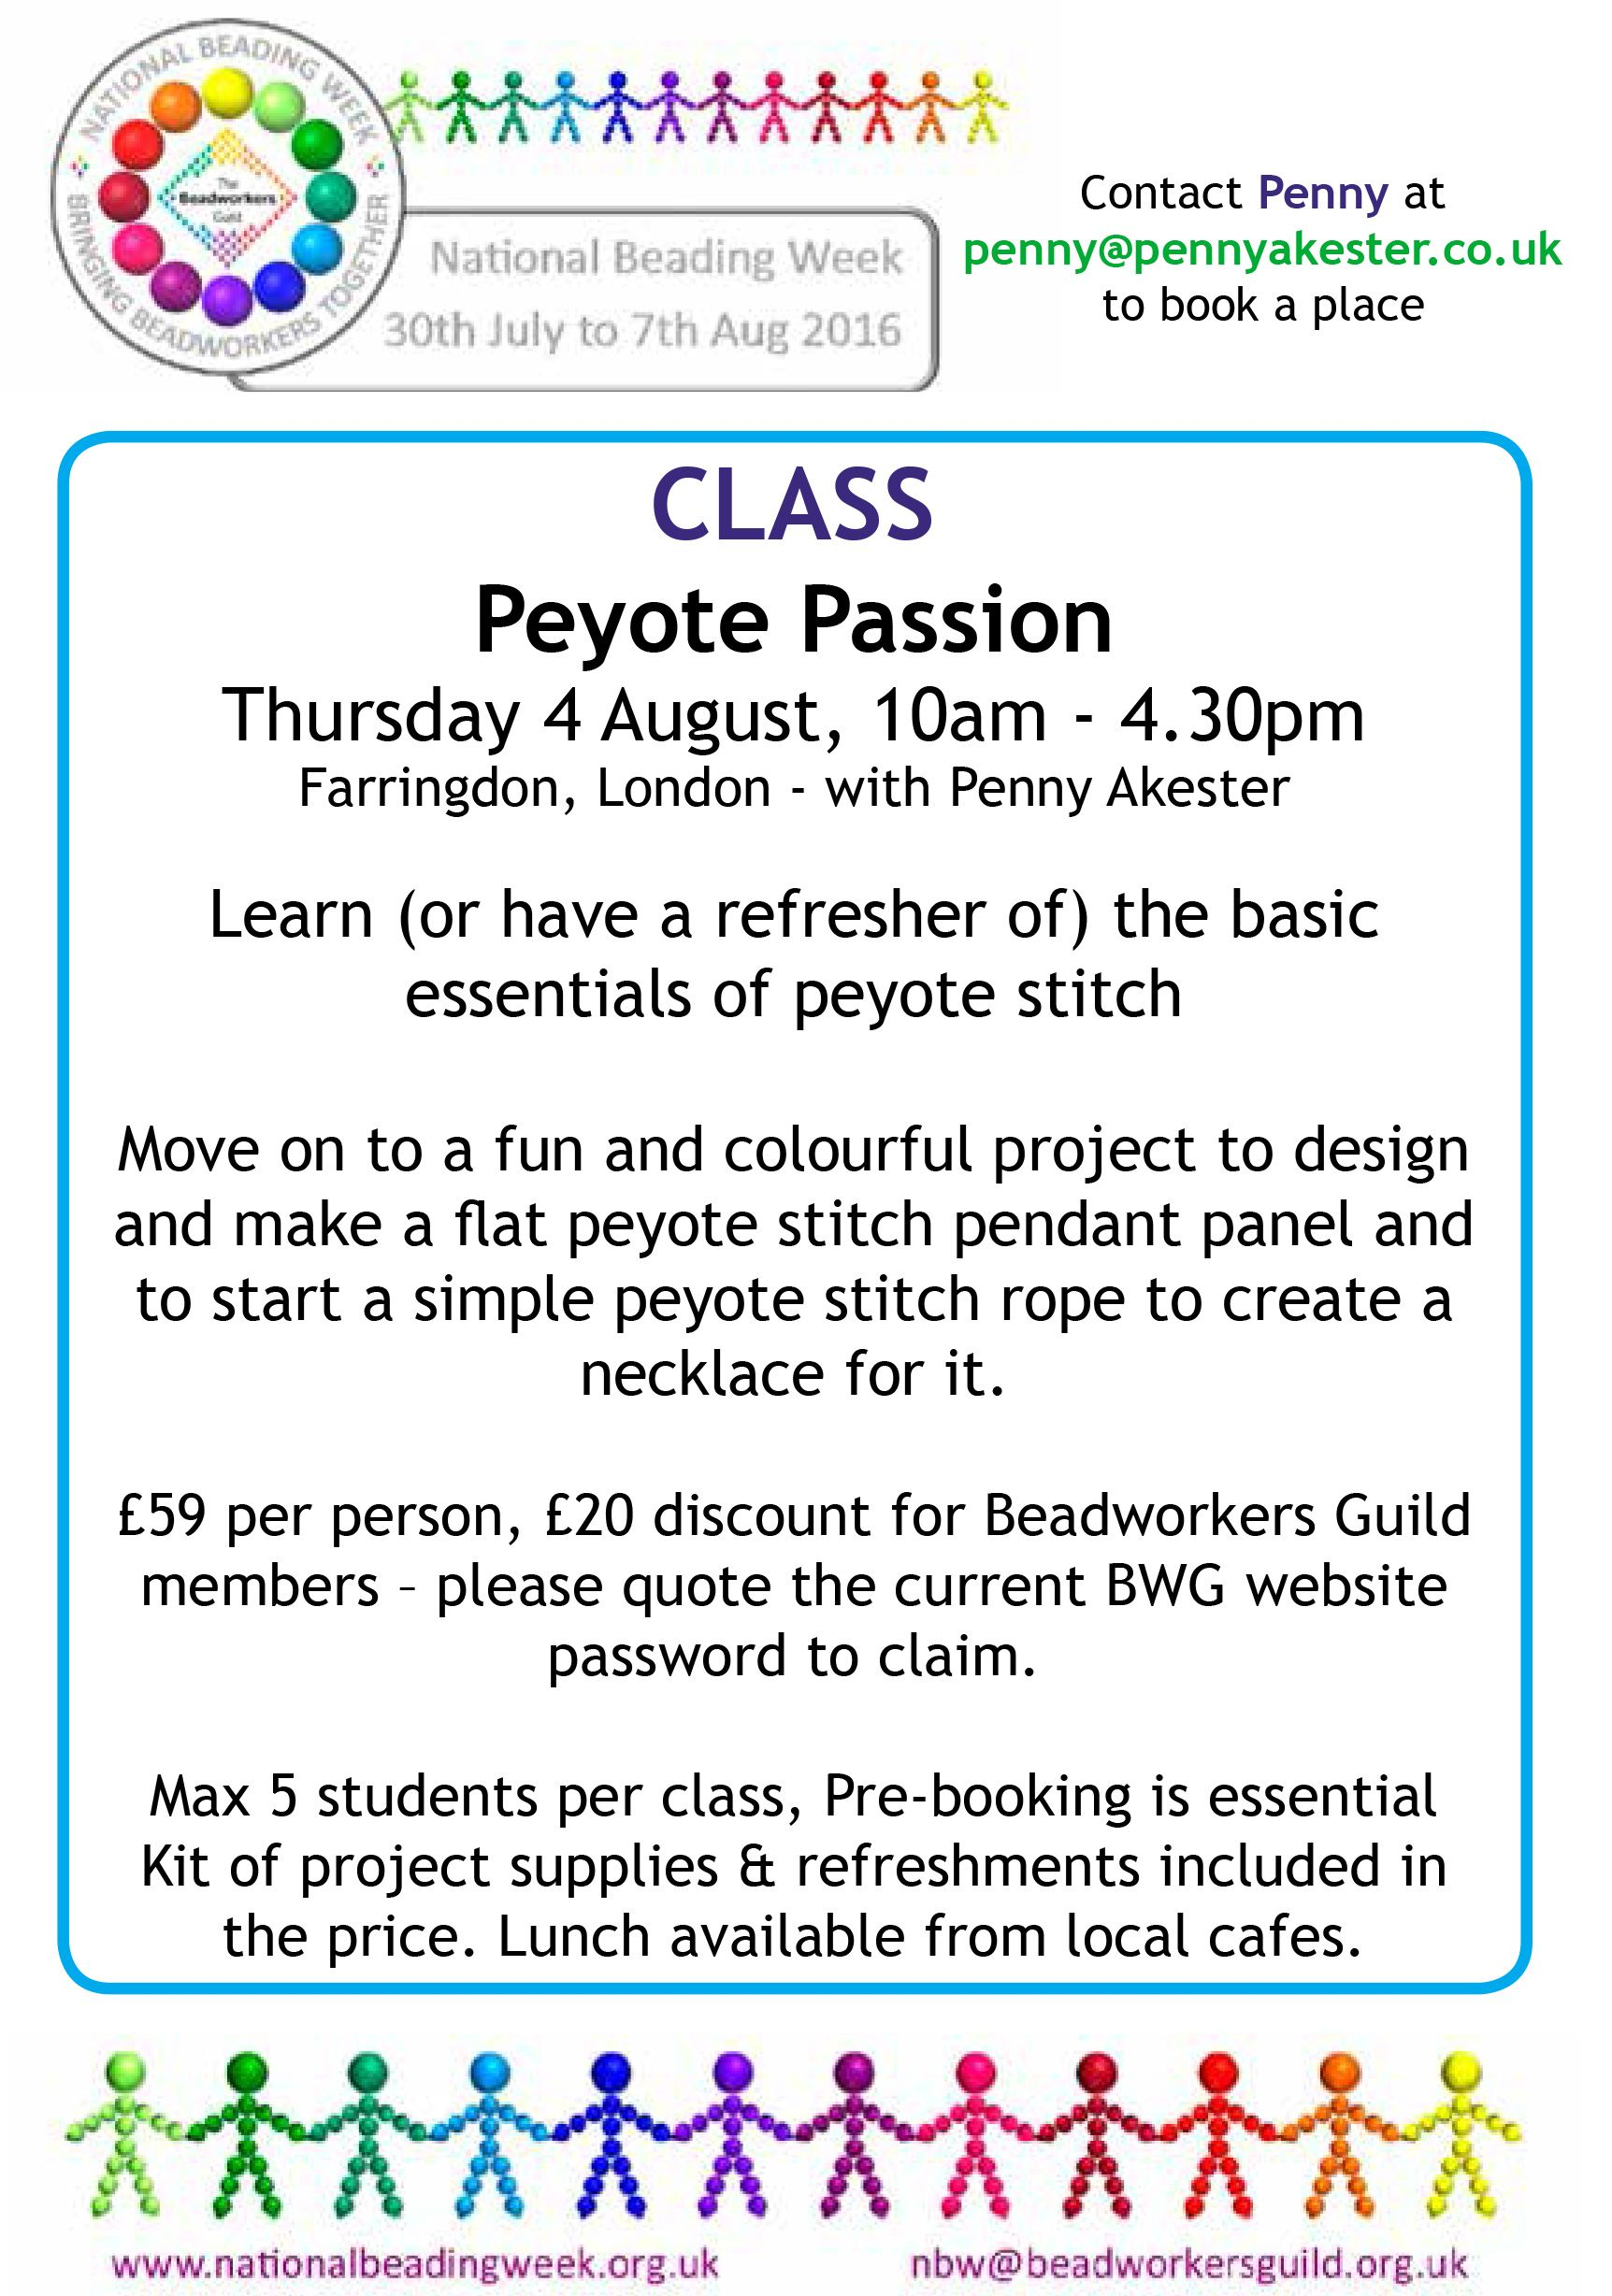 http://www.pennyakester.co.uk/jewellery-classes.html